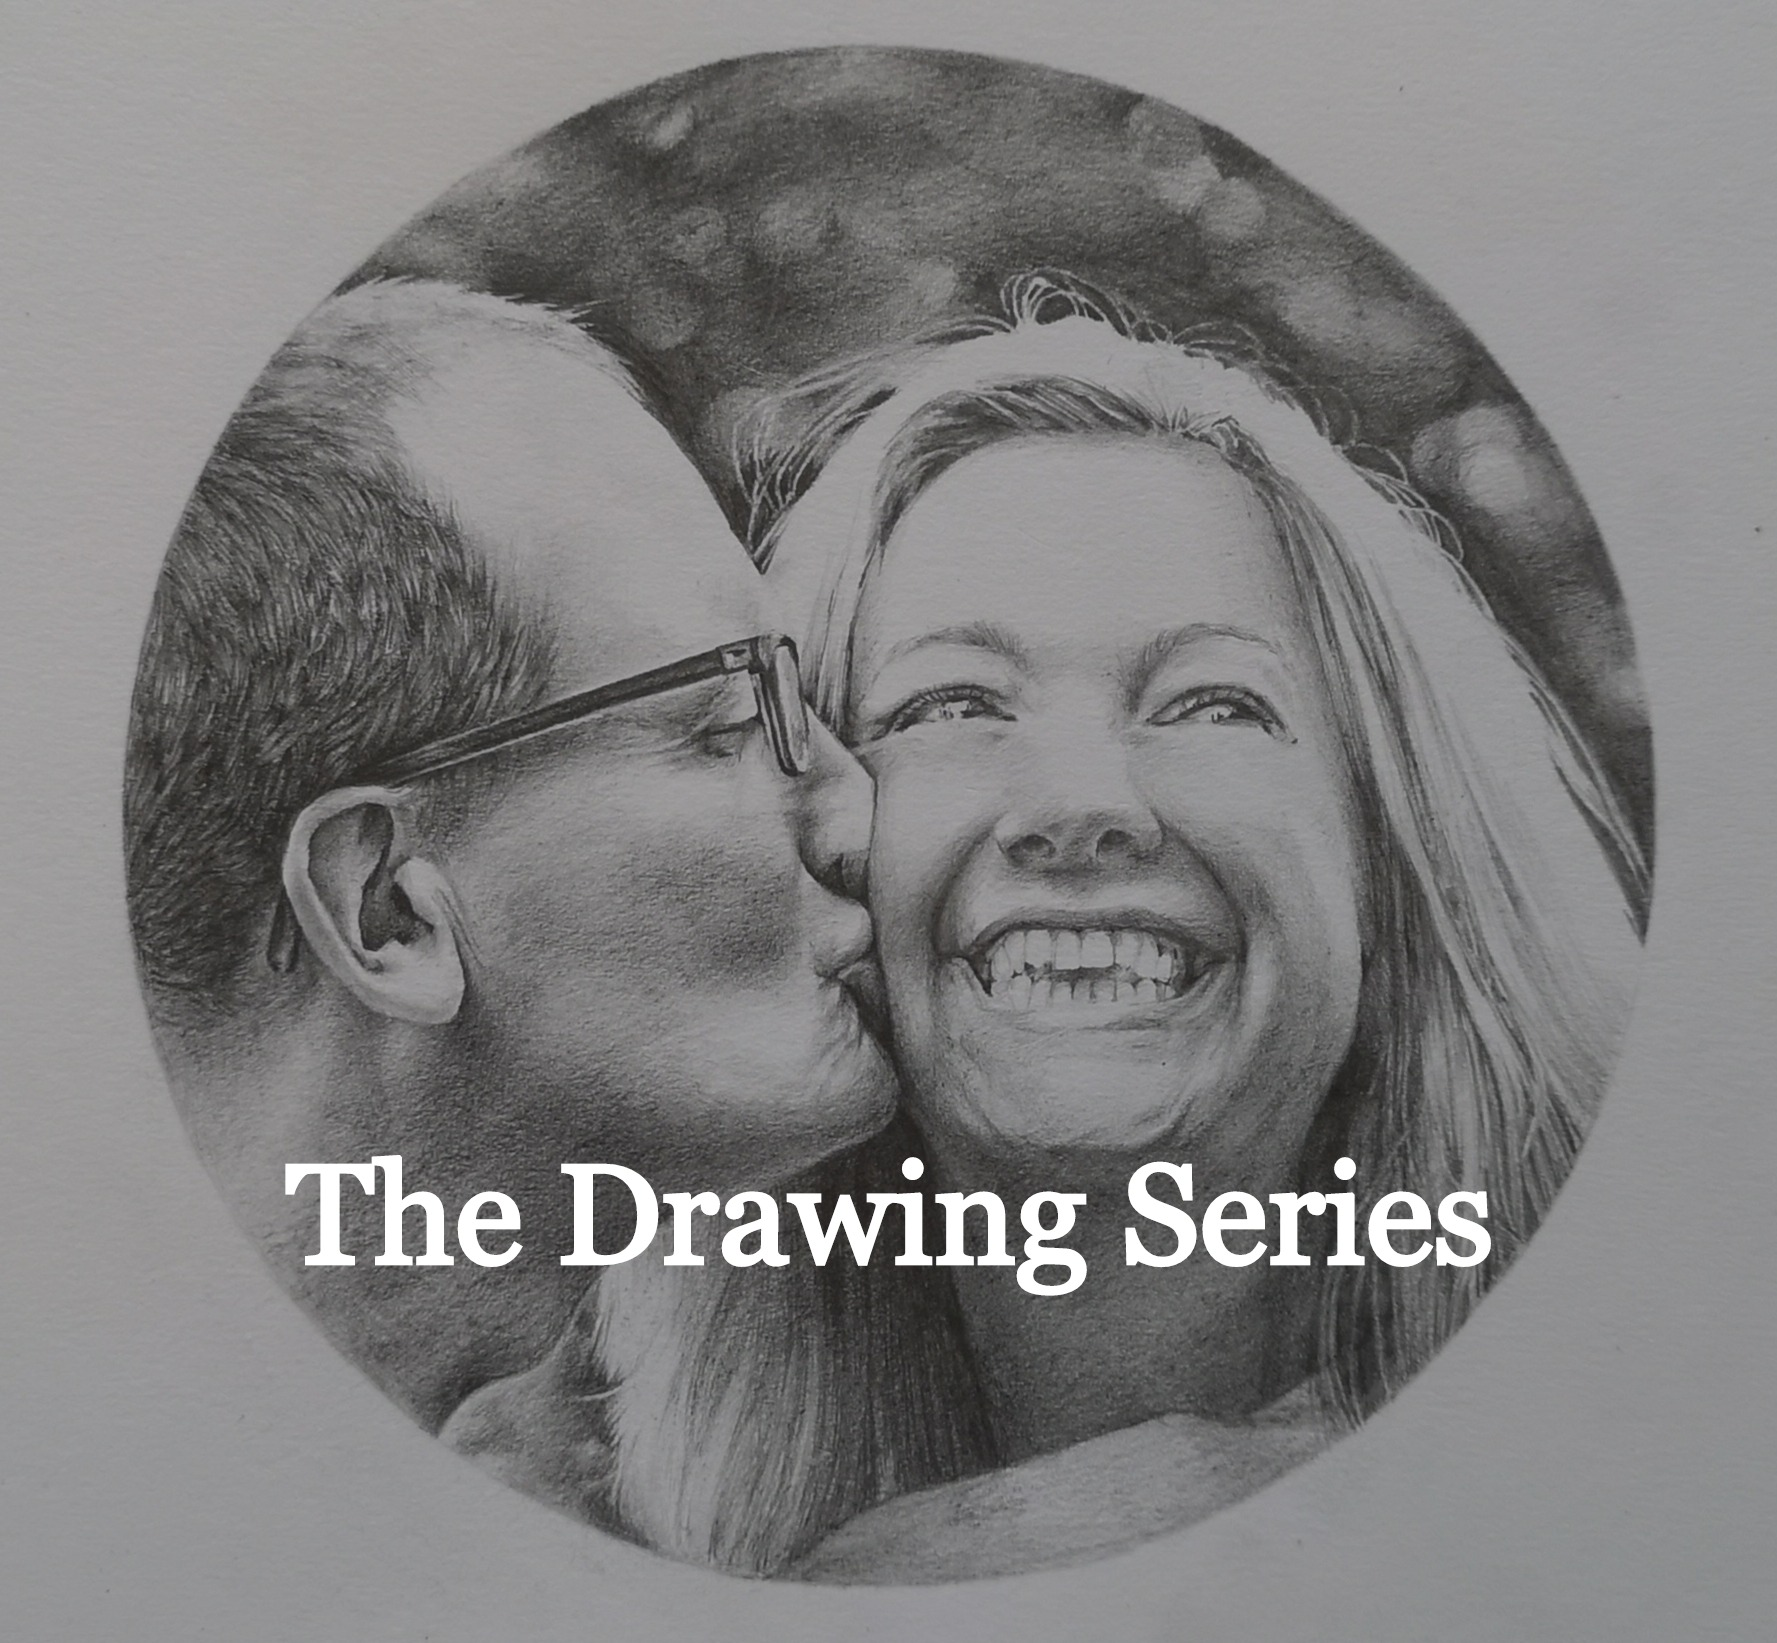 The Drawing Series